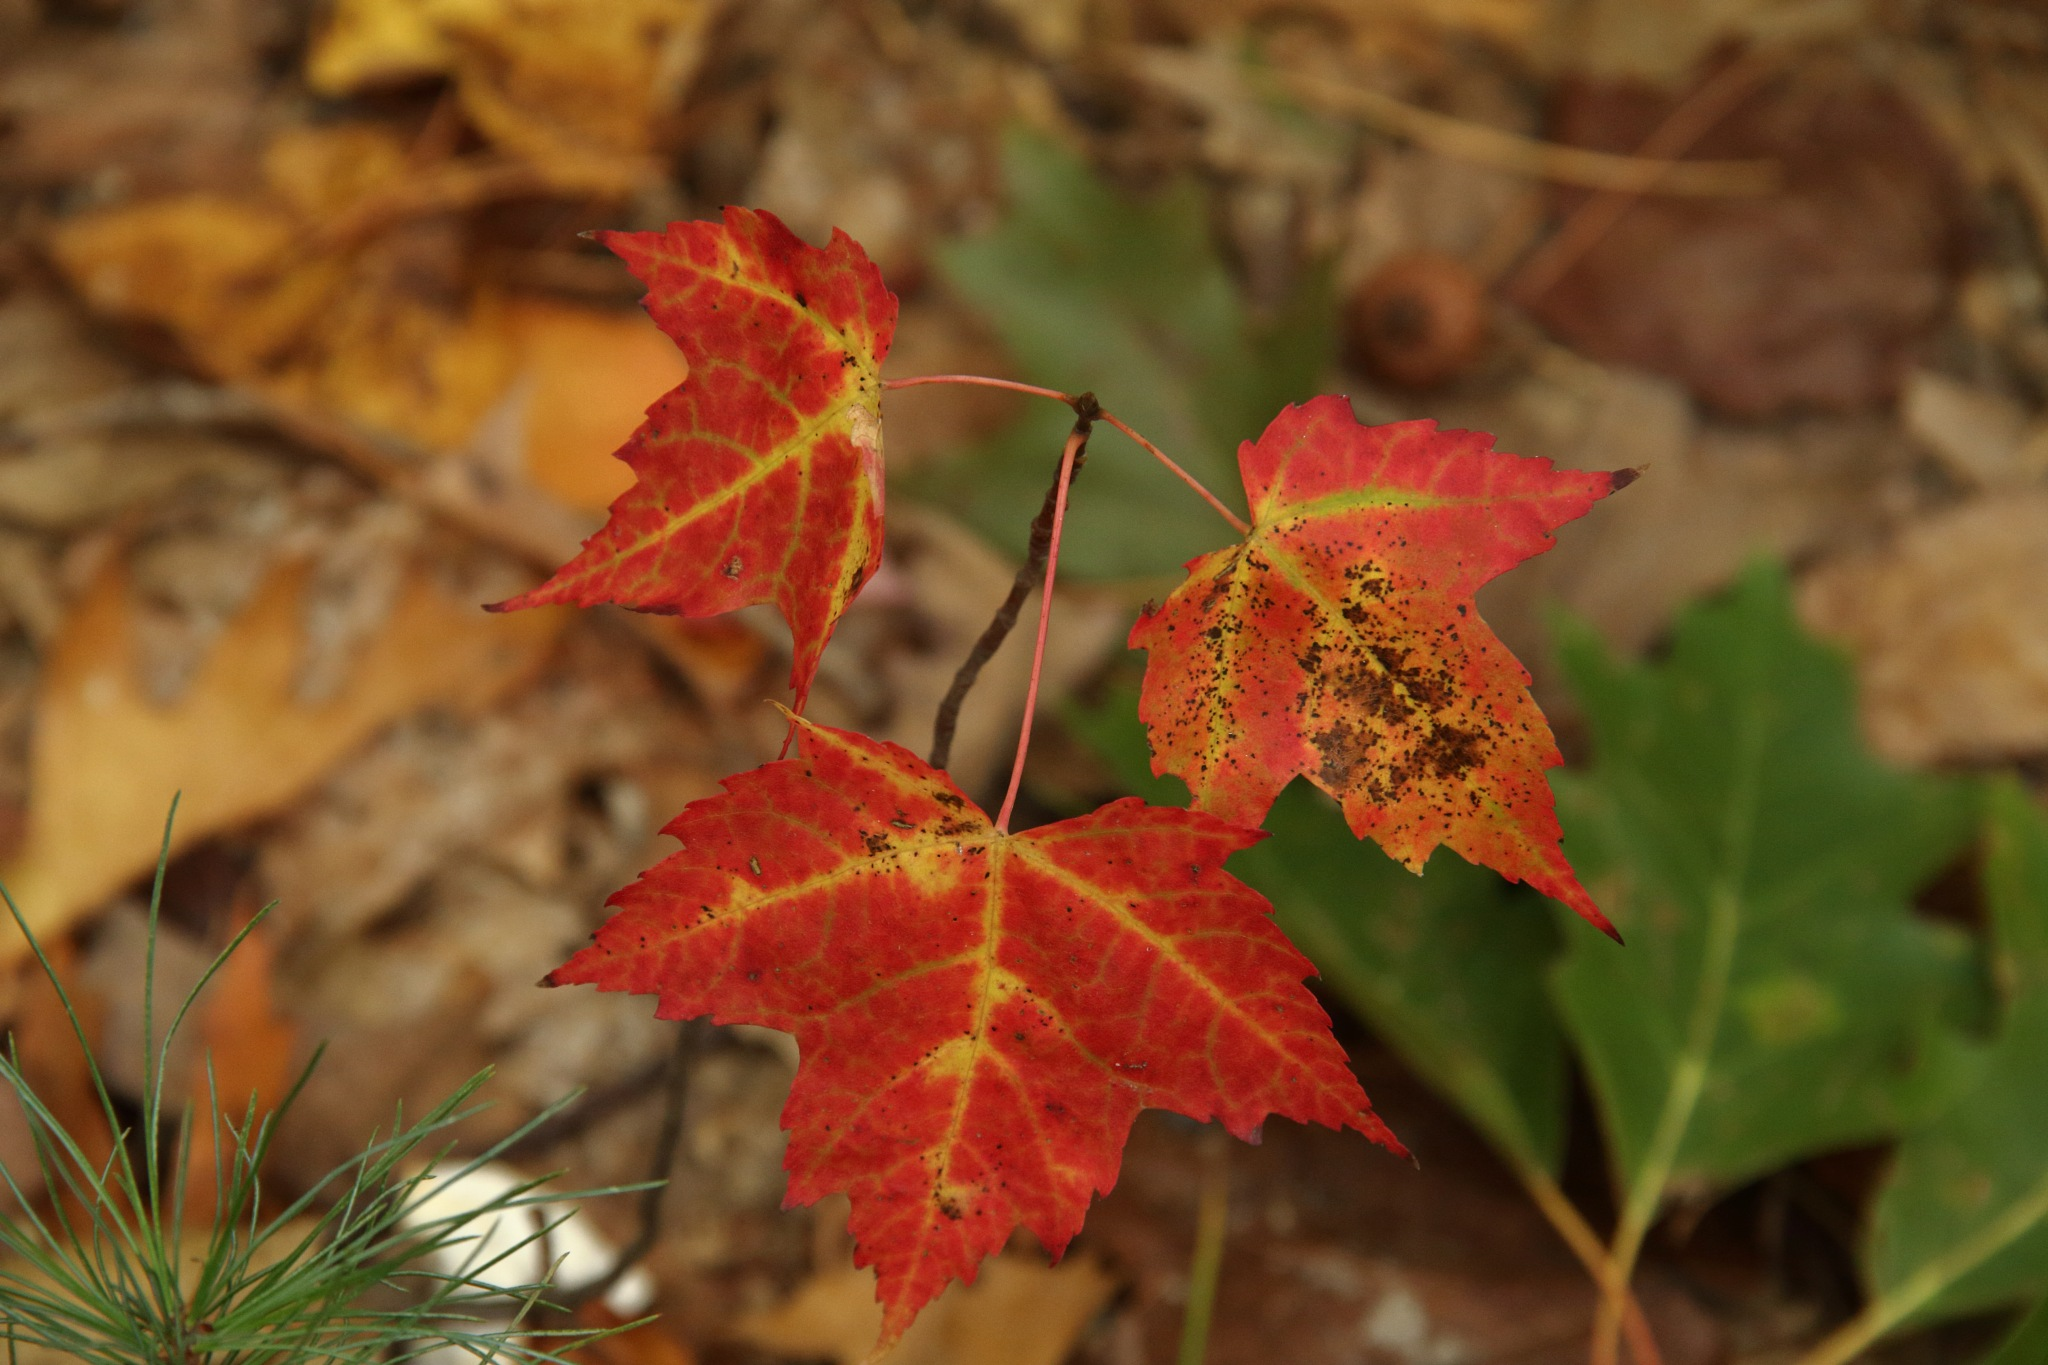 Leaves by Anant Wagle